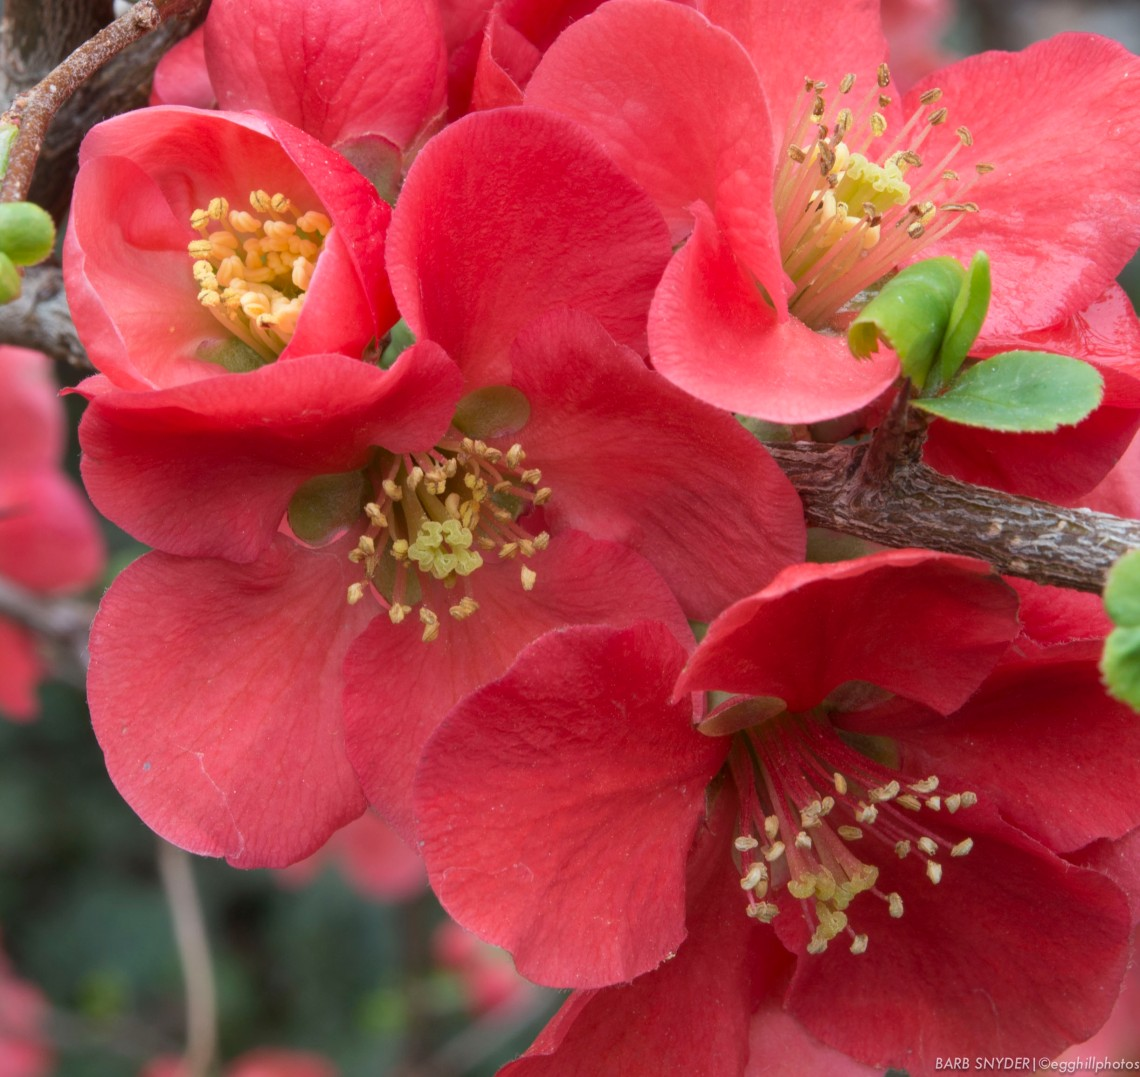 Quince blooms - the same day as the Death Valley snow pics.